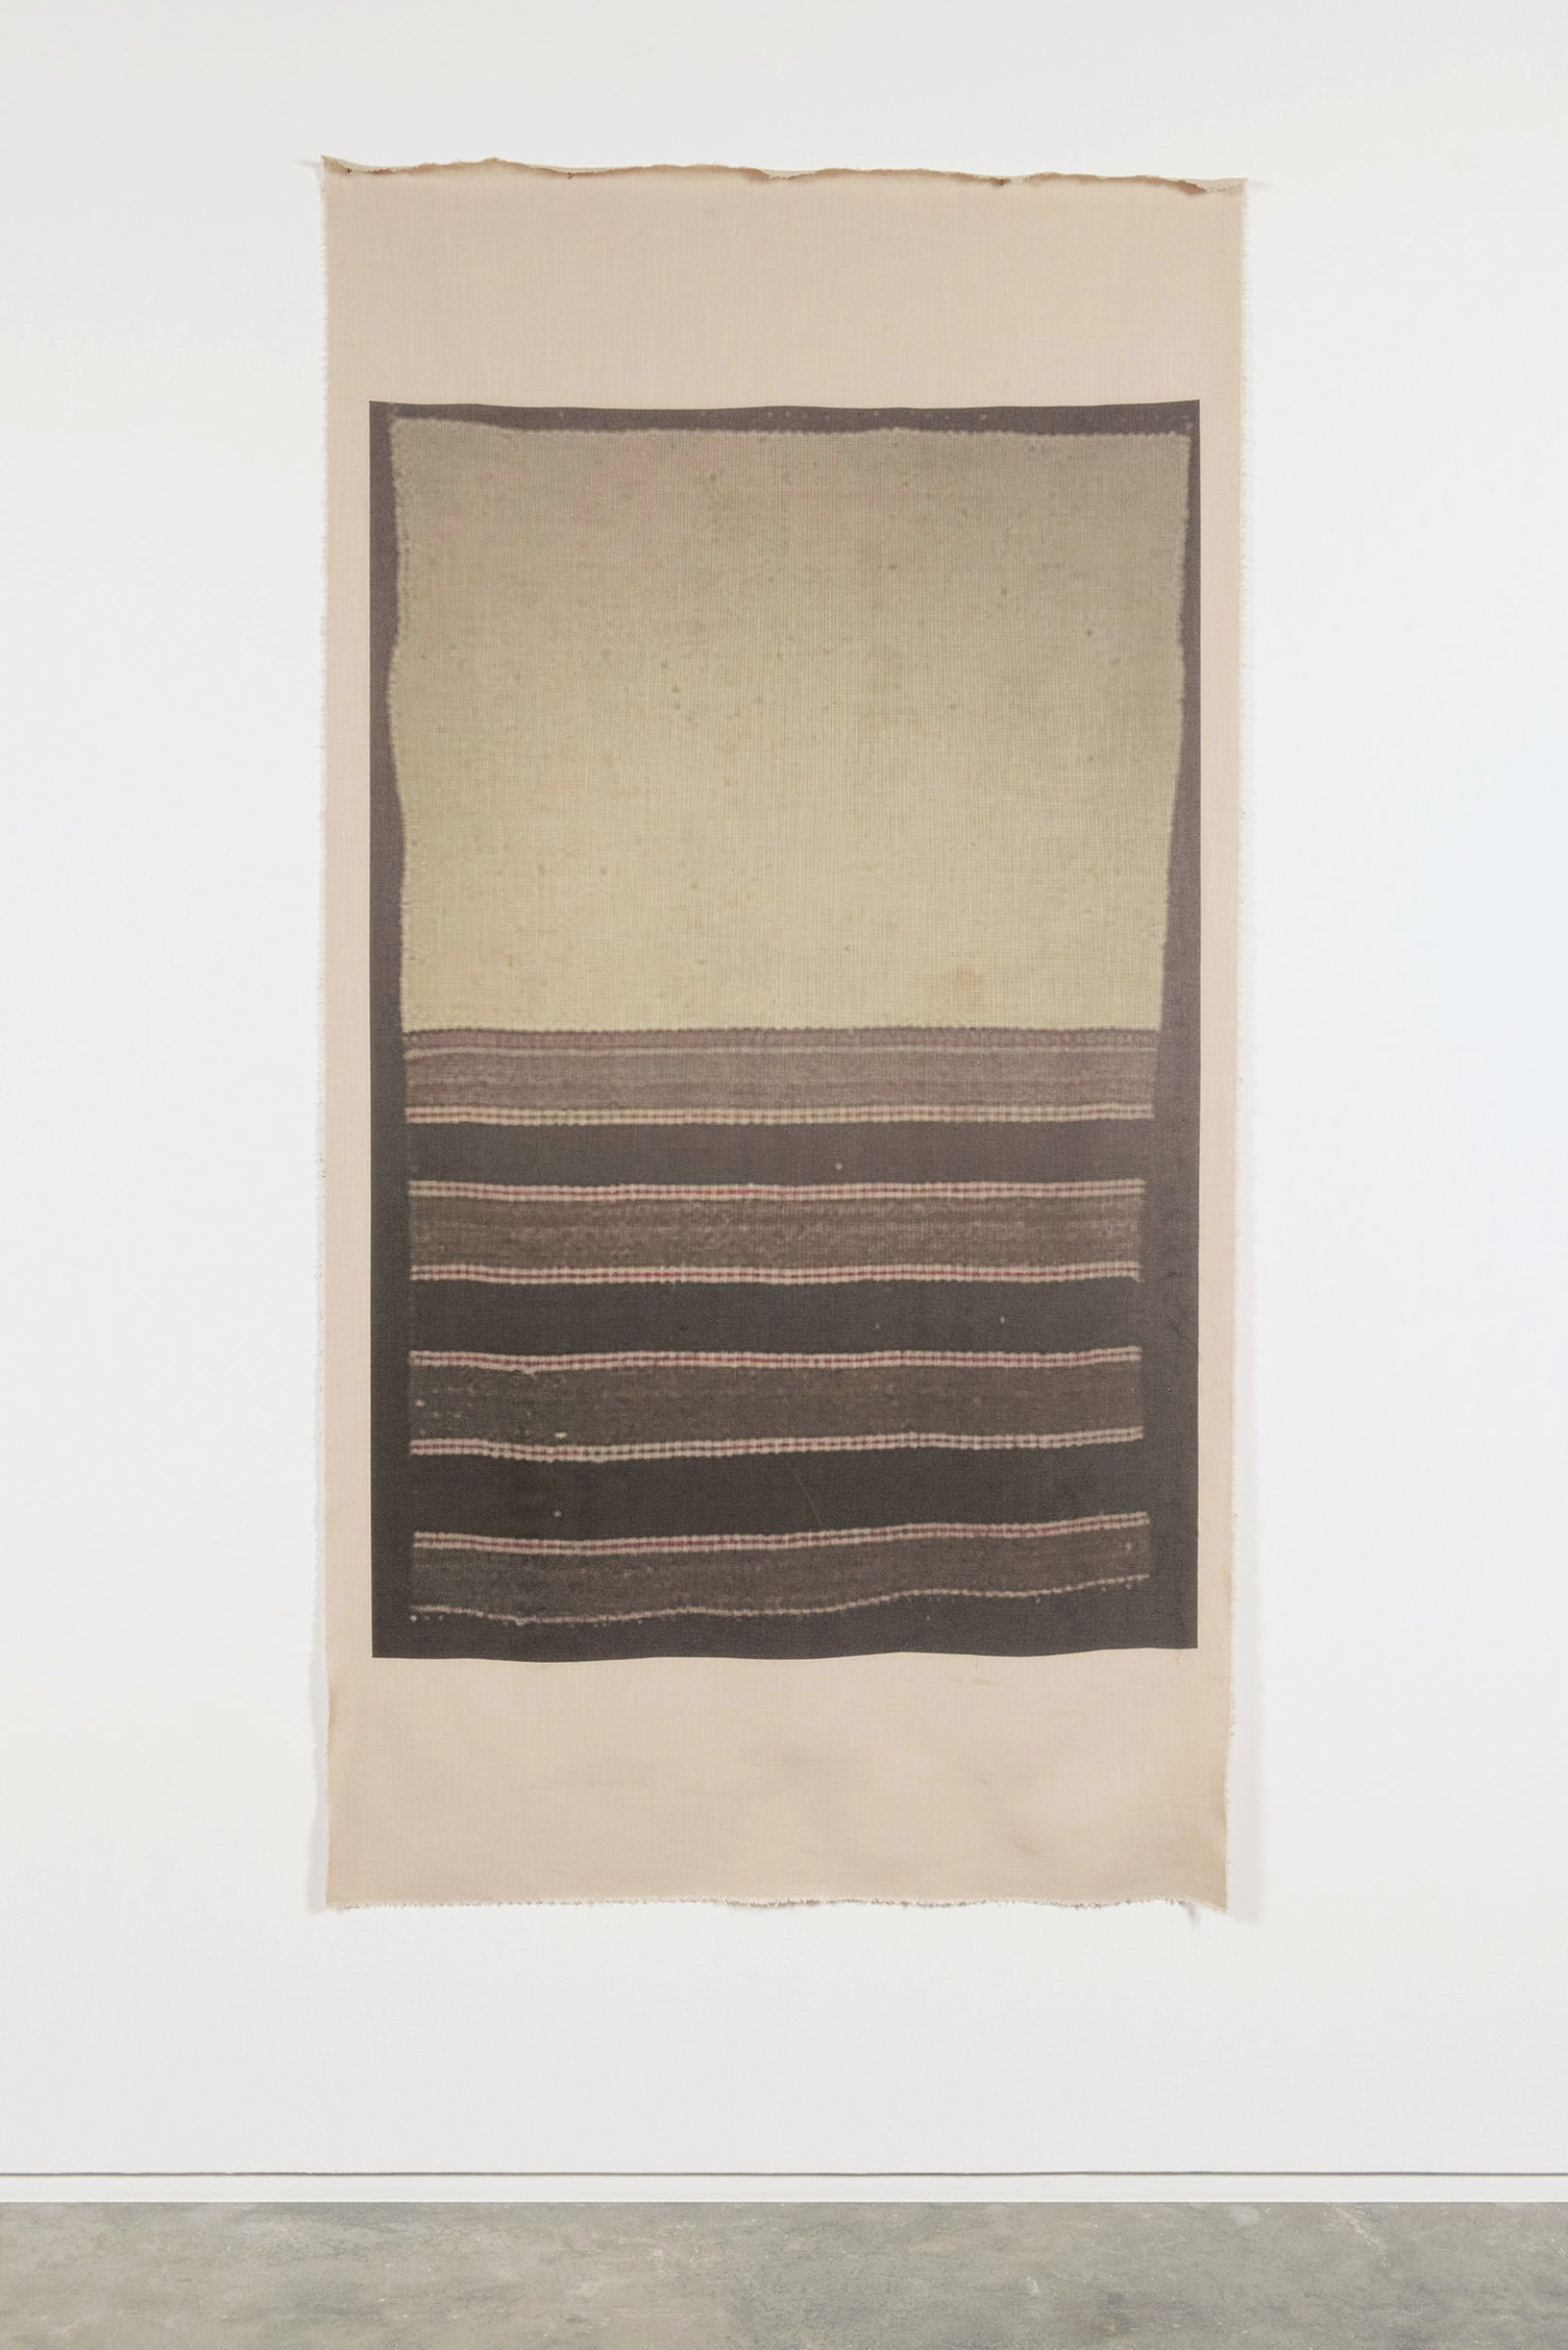 Duane Linklater, UMFA 1974.079.091.069, 2015, inkjet print on linen, nails, from Navajo Saddle Blanket, Utah Museum of Fine Arts Collection, 85 x 44 in. (216 x 112 cm)